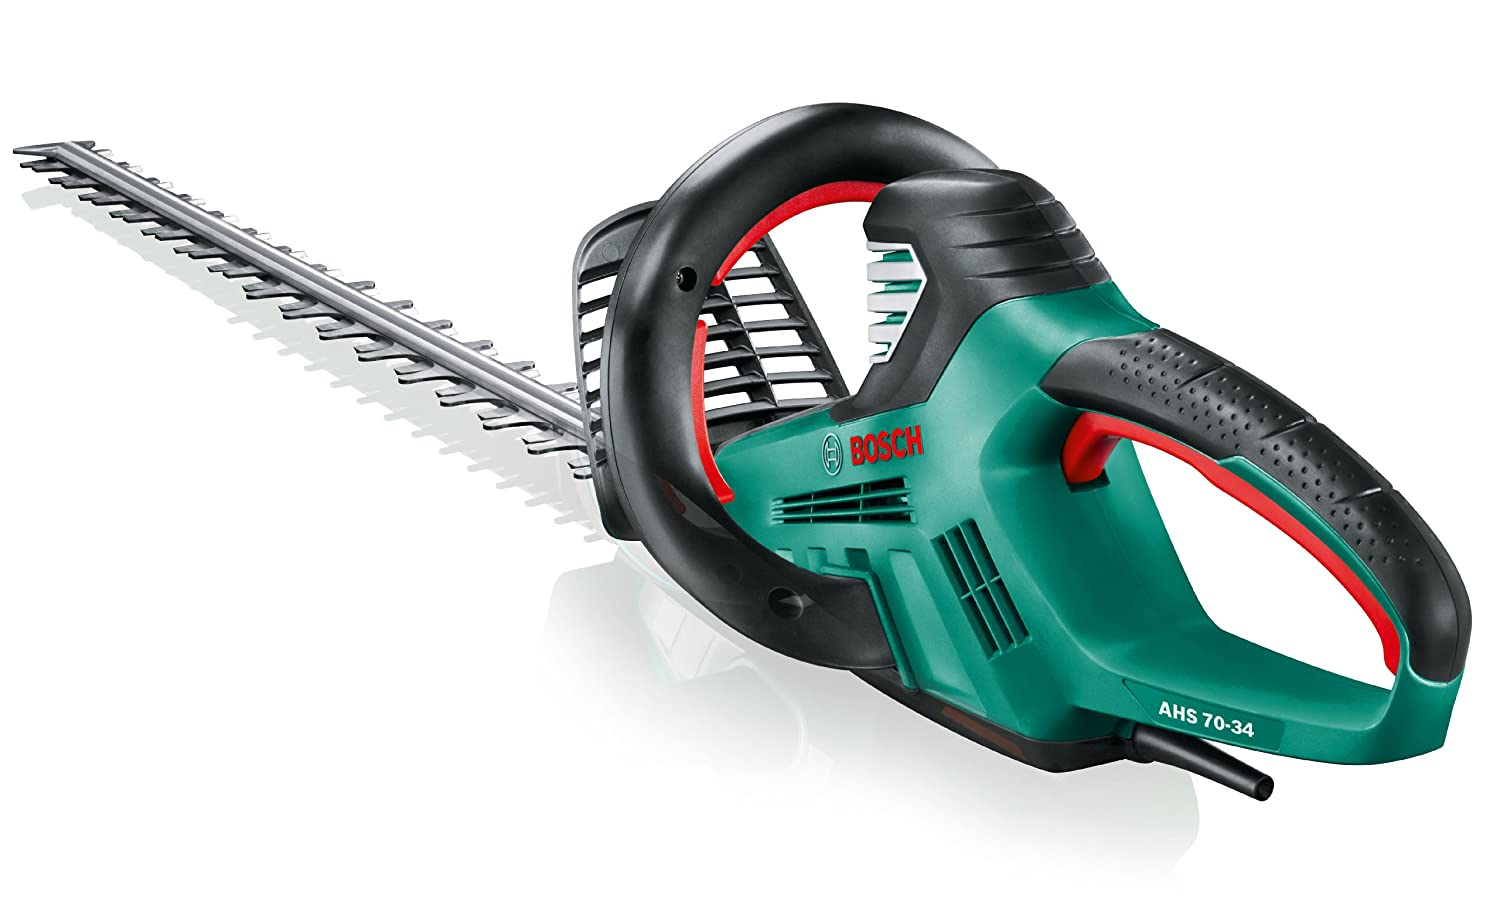 Bosch Hedgecutter AHS 70-34 (blade cover, cardboard box, 700 W, 700 mm blade length, 34 mm tooth spacing) 0600847K70